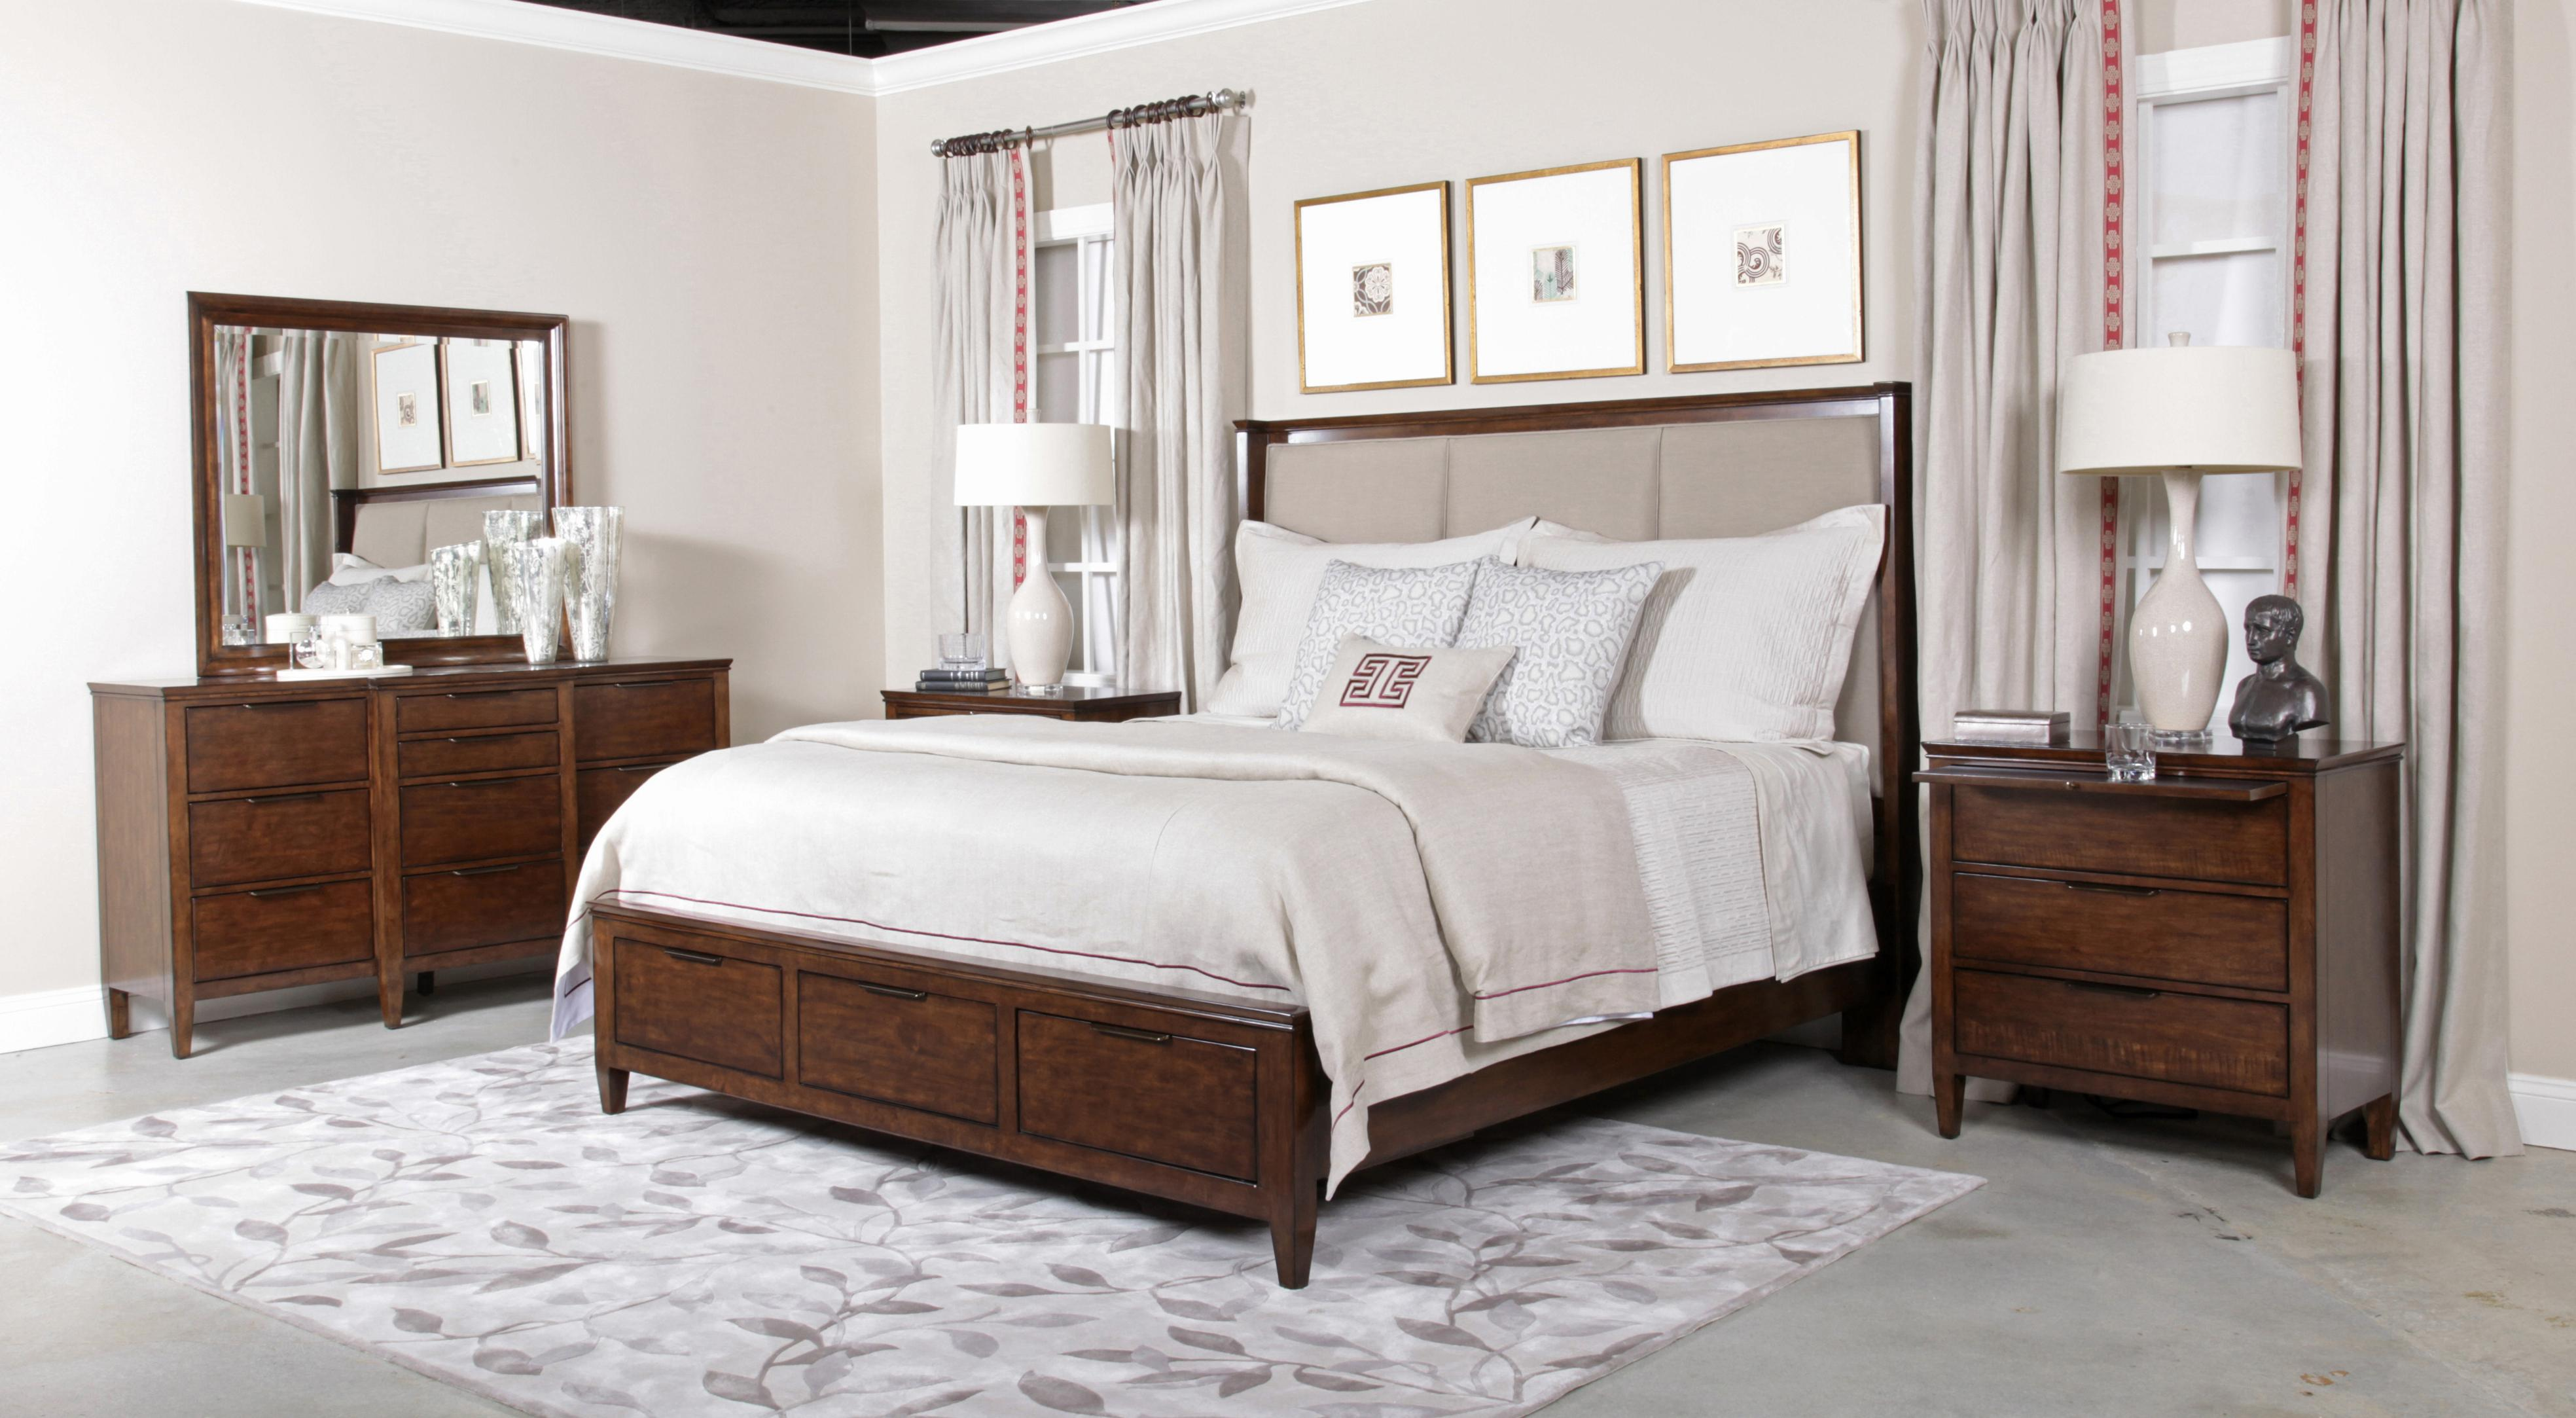 Kincaid Bedroom Furniture Kincaid Furniture Elise Transitional Elise Chairside Chest With